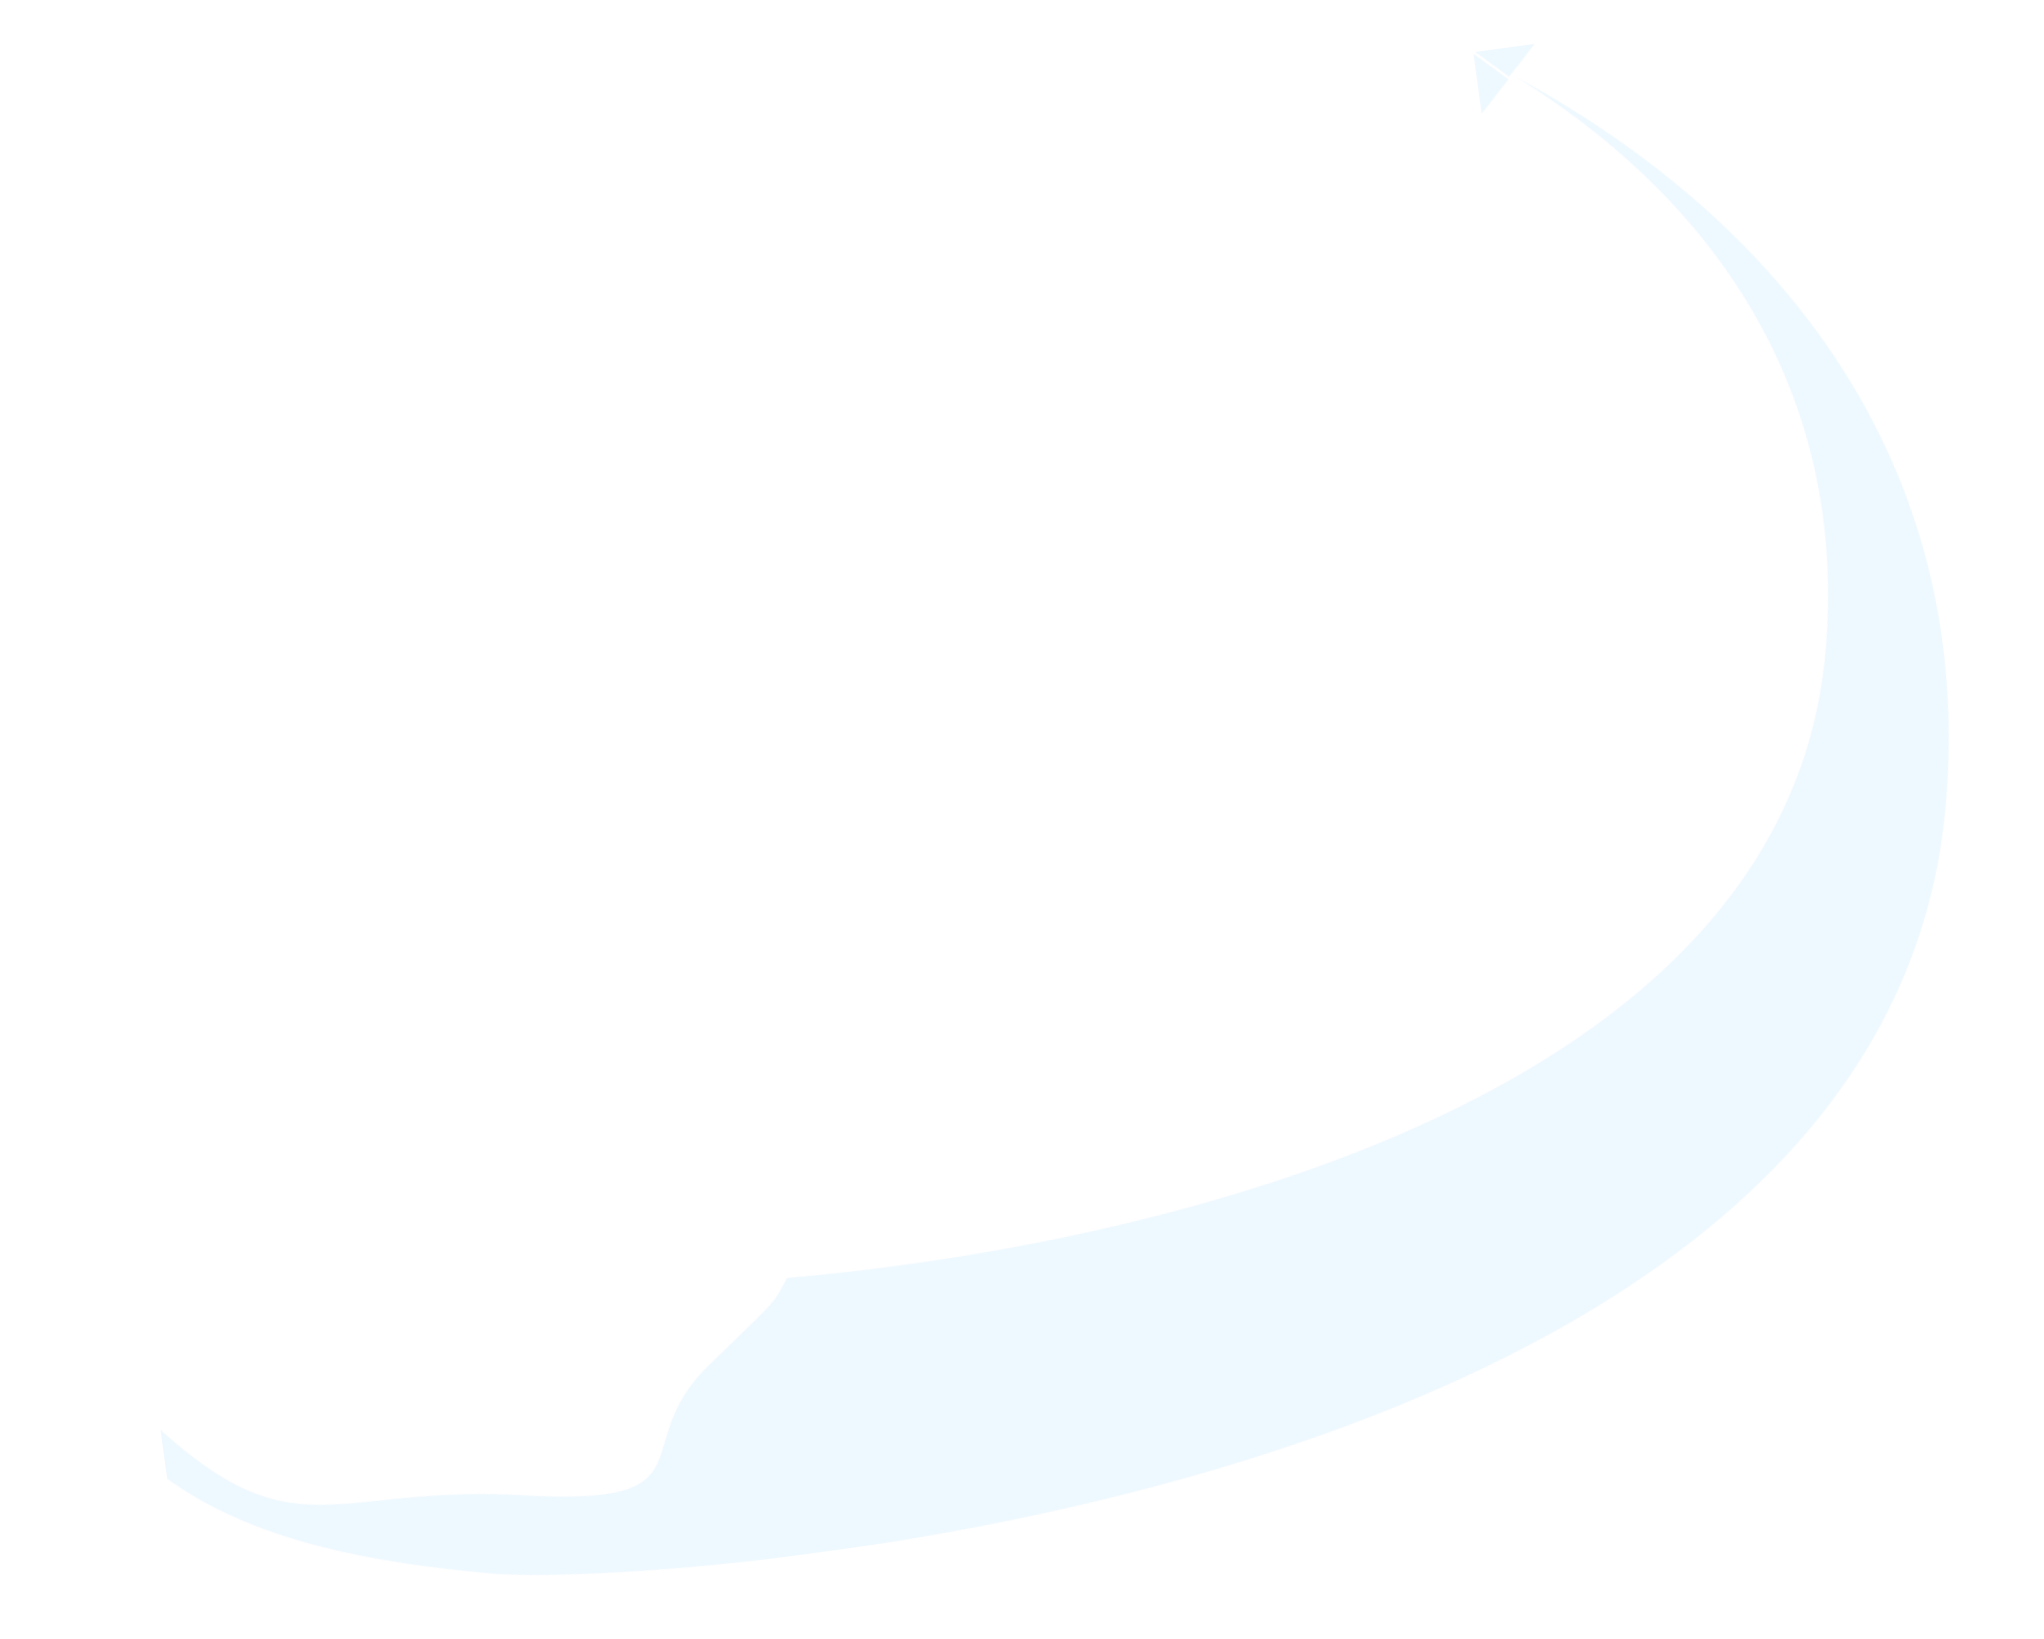 Curved line with a paper airplane at one end